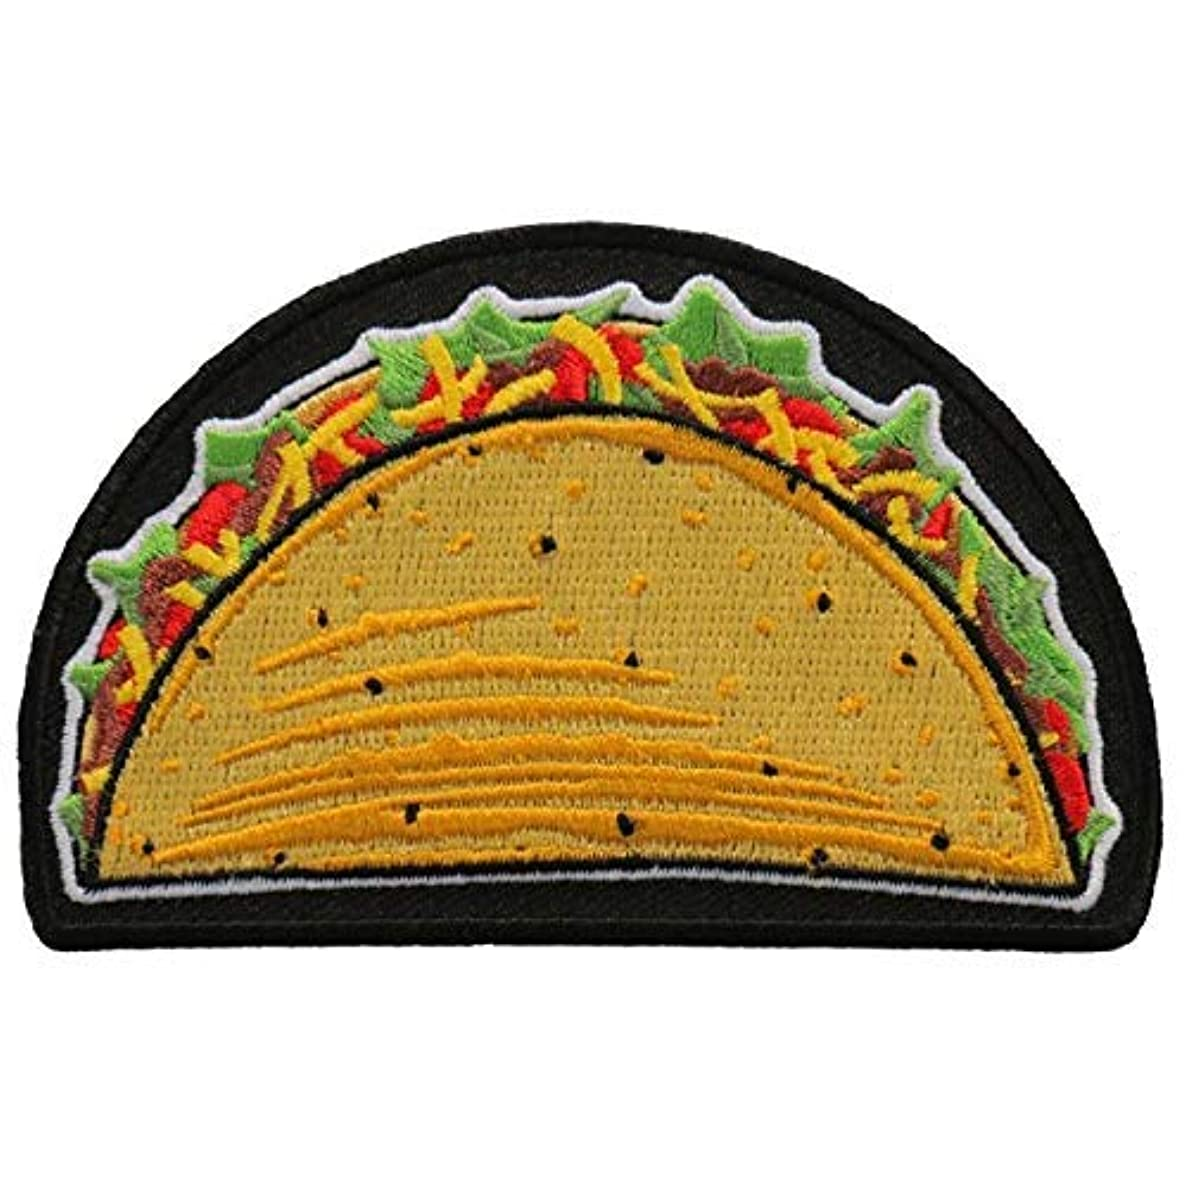 Mexican Taco Iron On Patch - Officially Licensed Original Artwork, 4